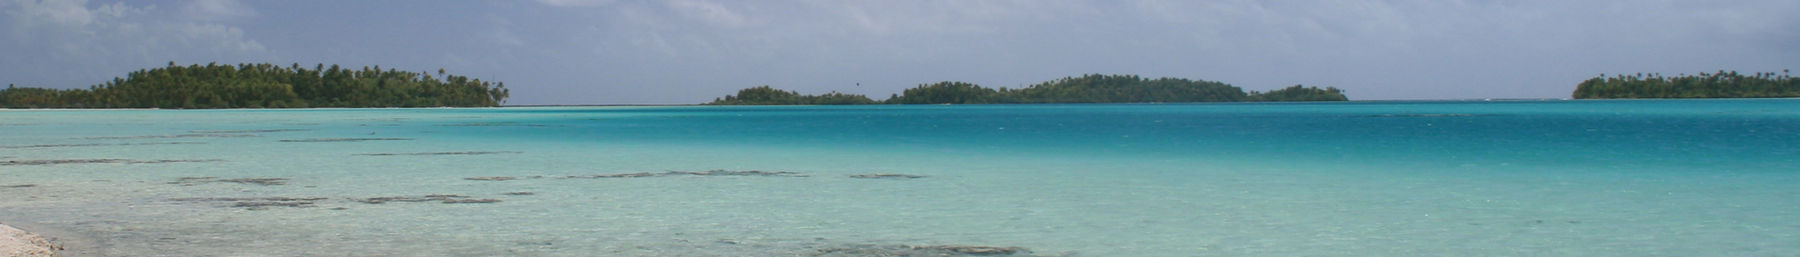 Rangiroa (French Polynesia) banner Lagoon and beach.jpg